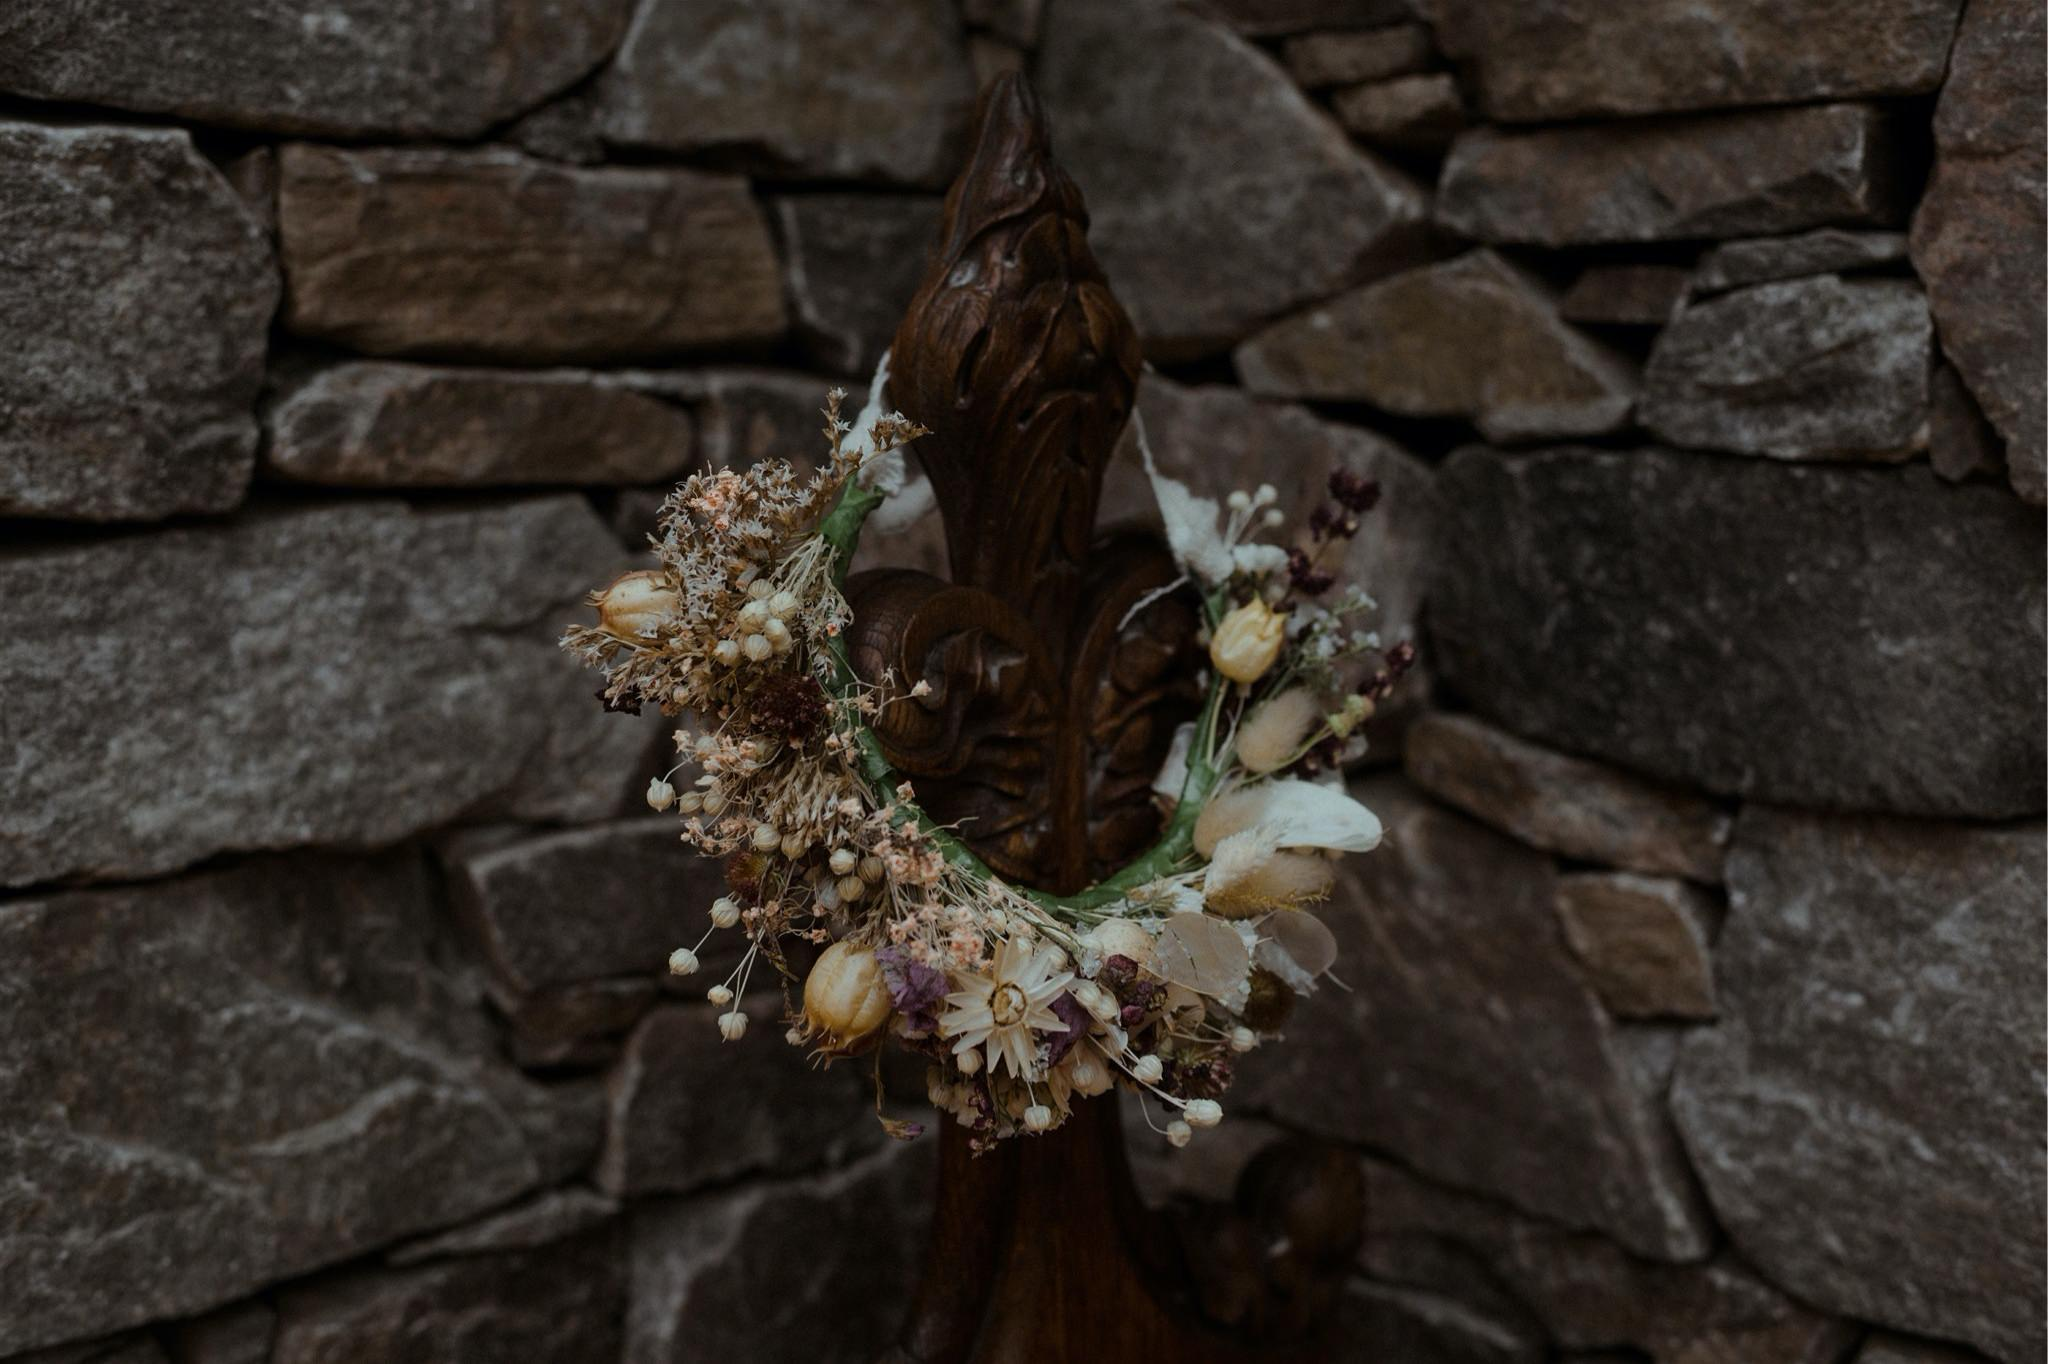 Details shot of flower crown against stone wall at a Scottish elopement